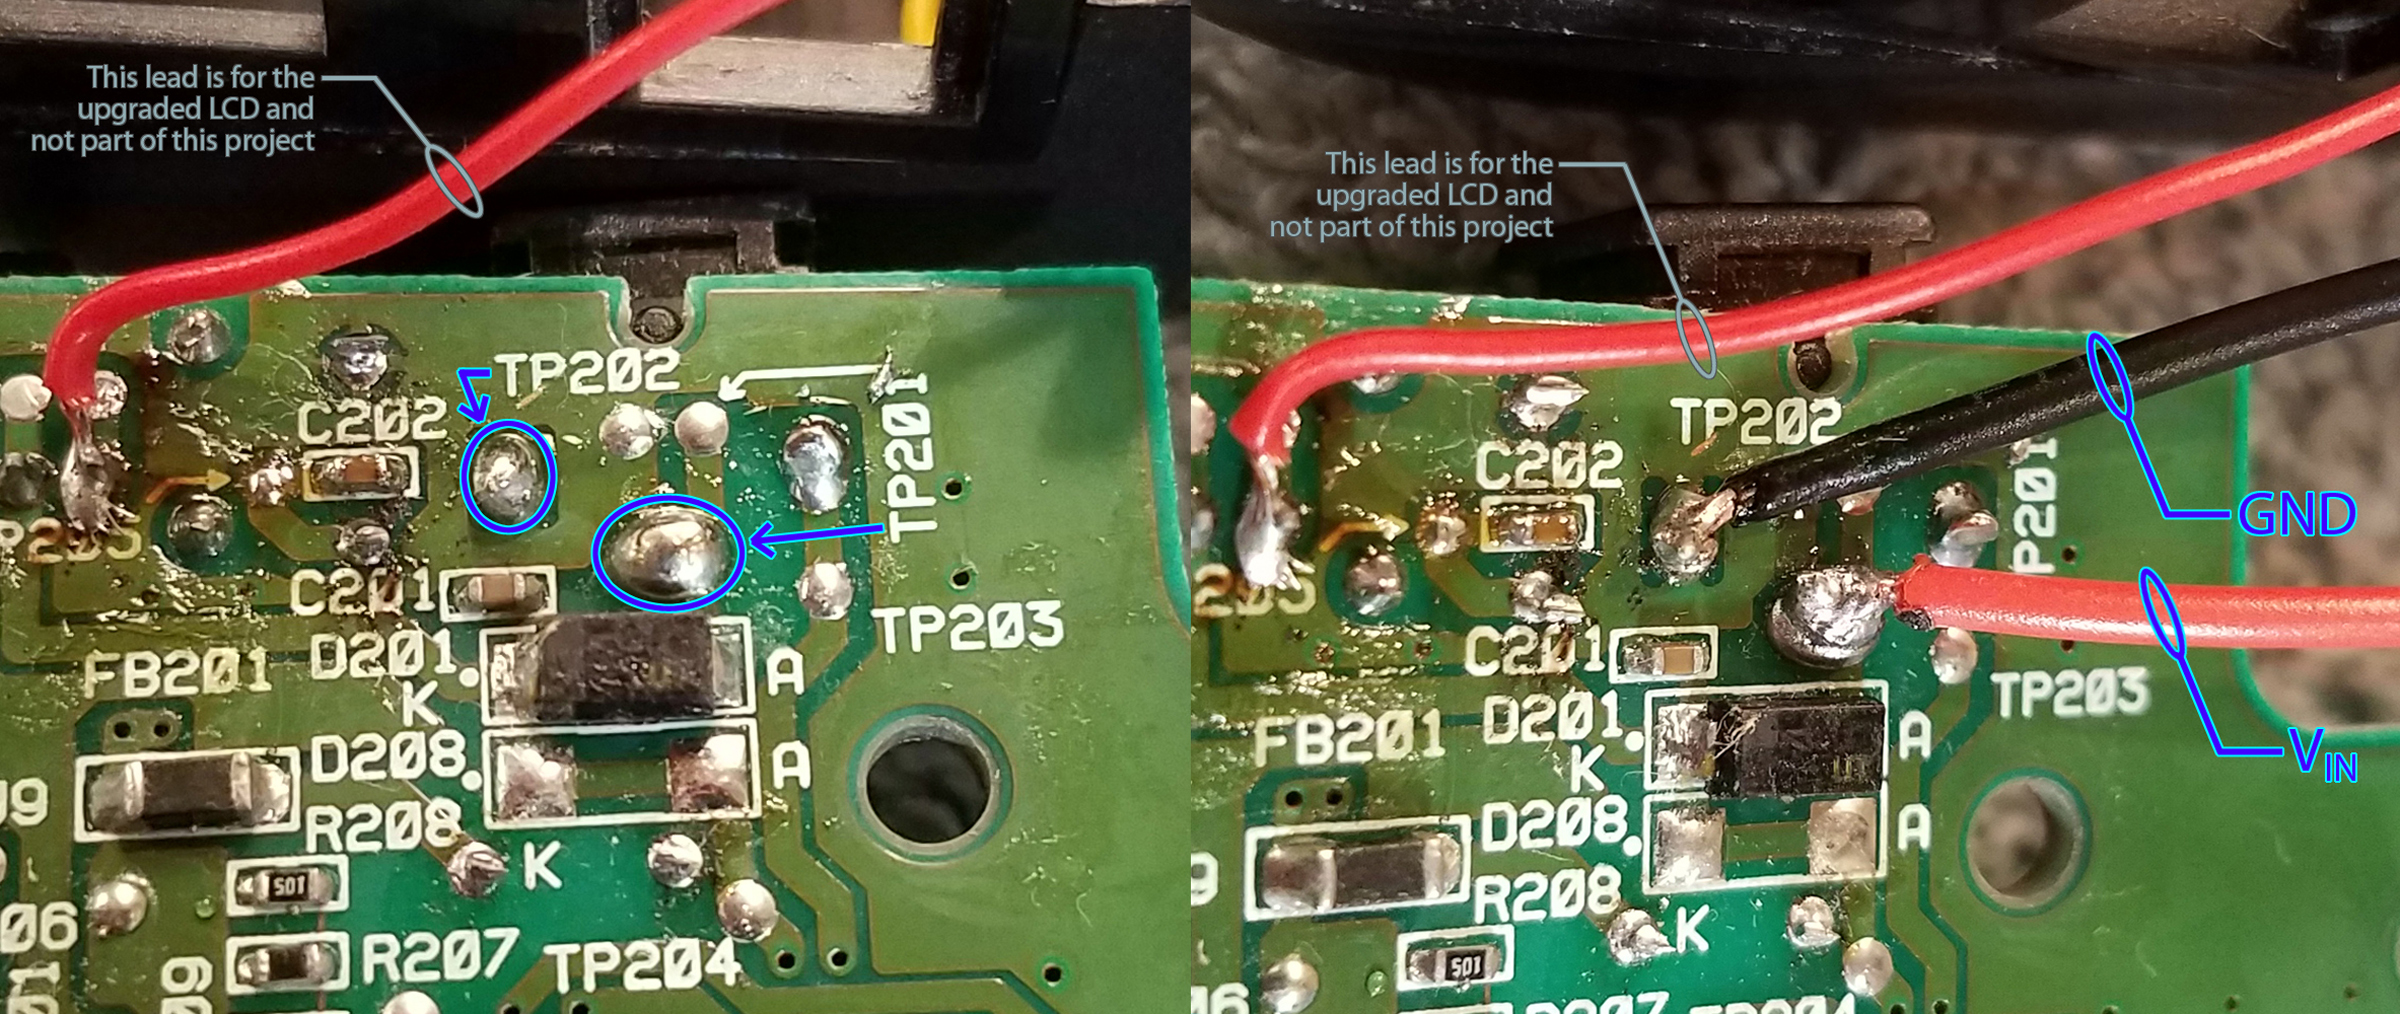 Next I connected the B & B wires from the charging board to the Nomad s original battery terminals on the rear circuit board